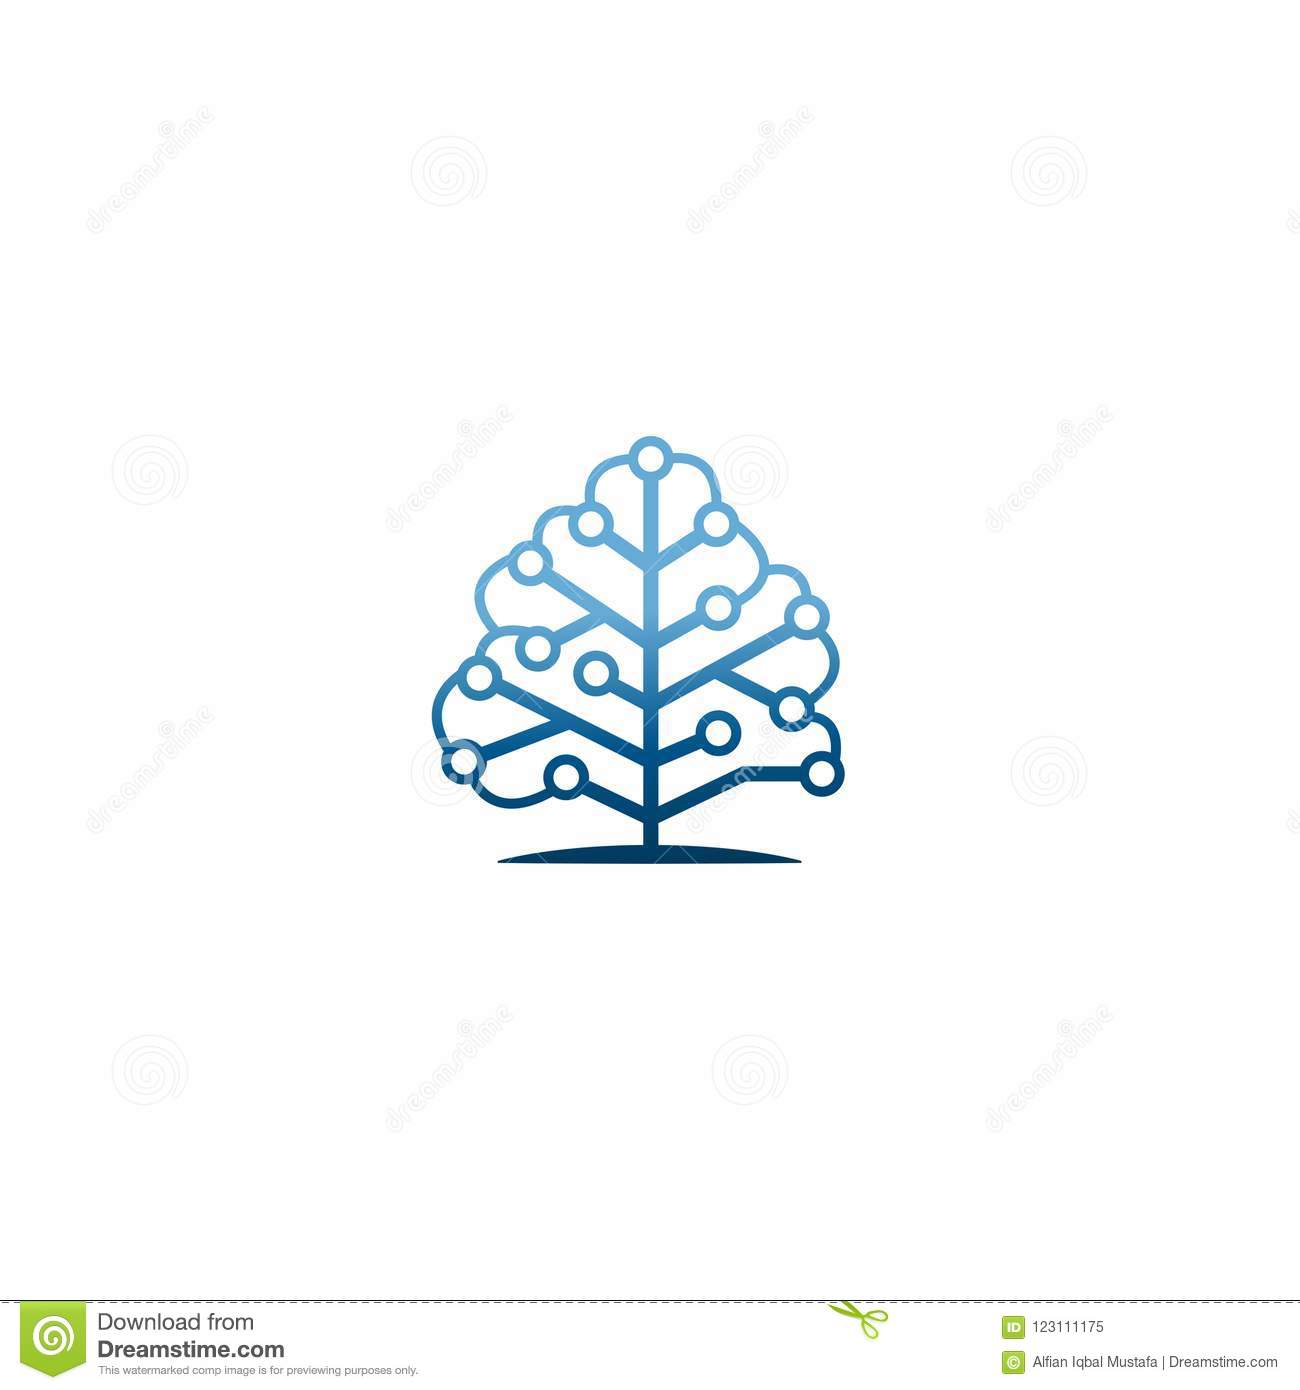 Technology Tree Logo Idea Microcircuit Shape Concept Communication Circuit Board Engineering Emblem Icon